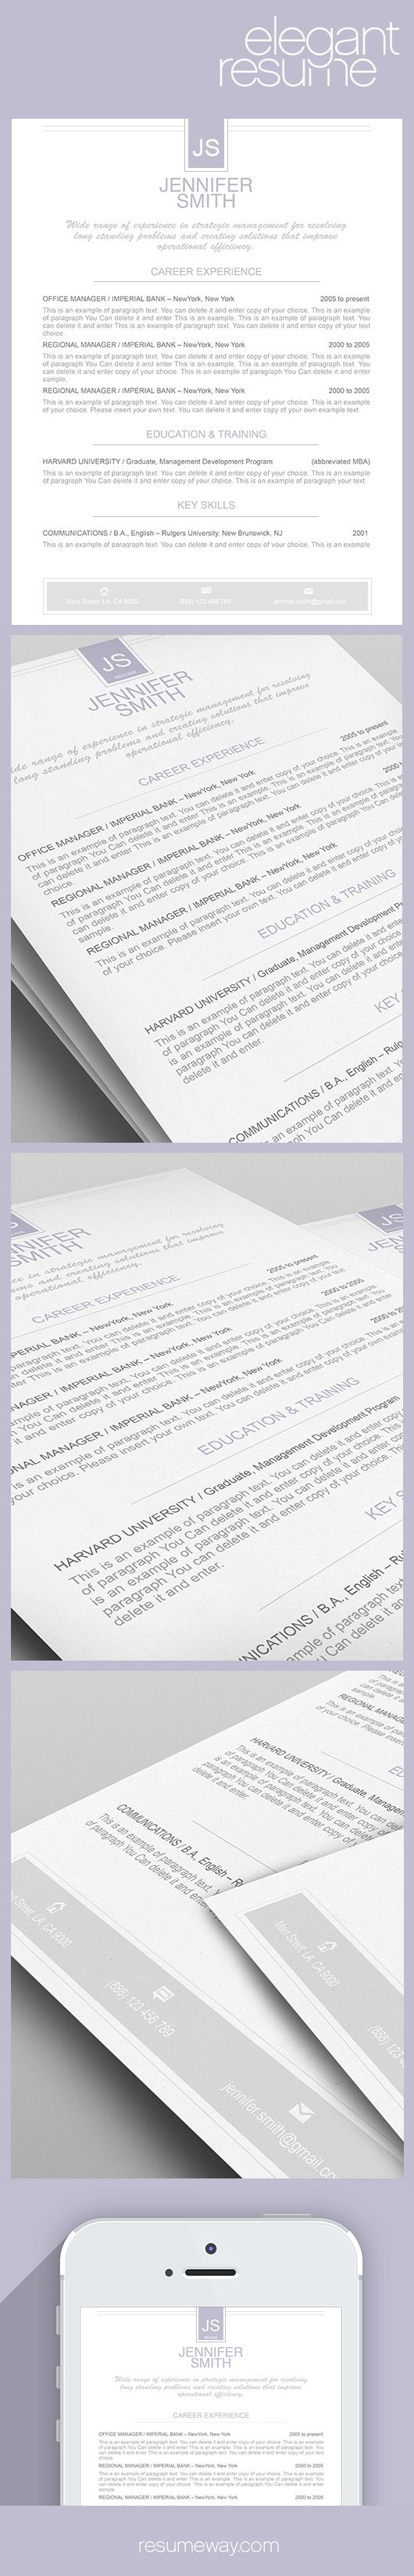 elegant resume template 110460